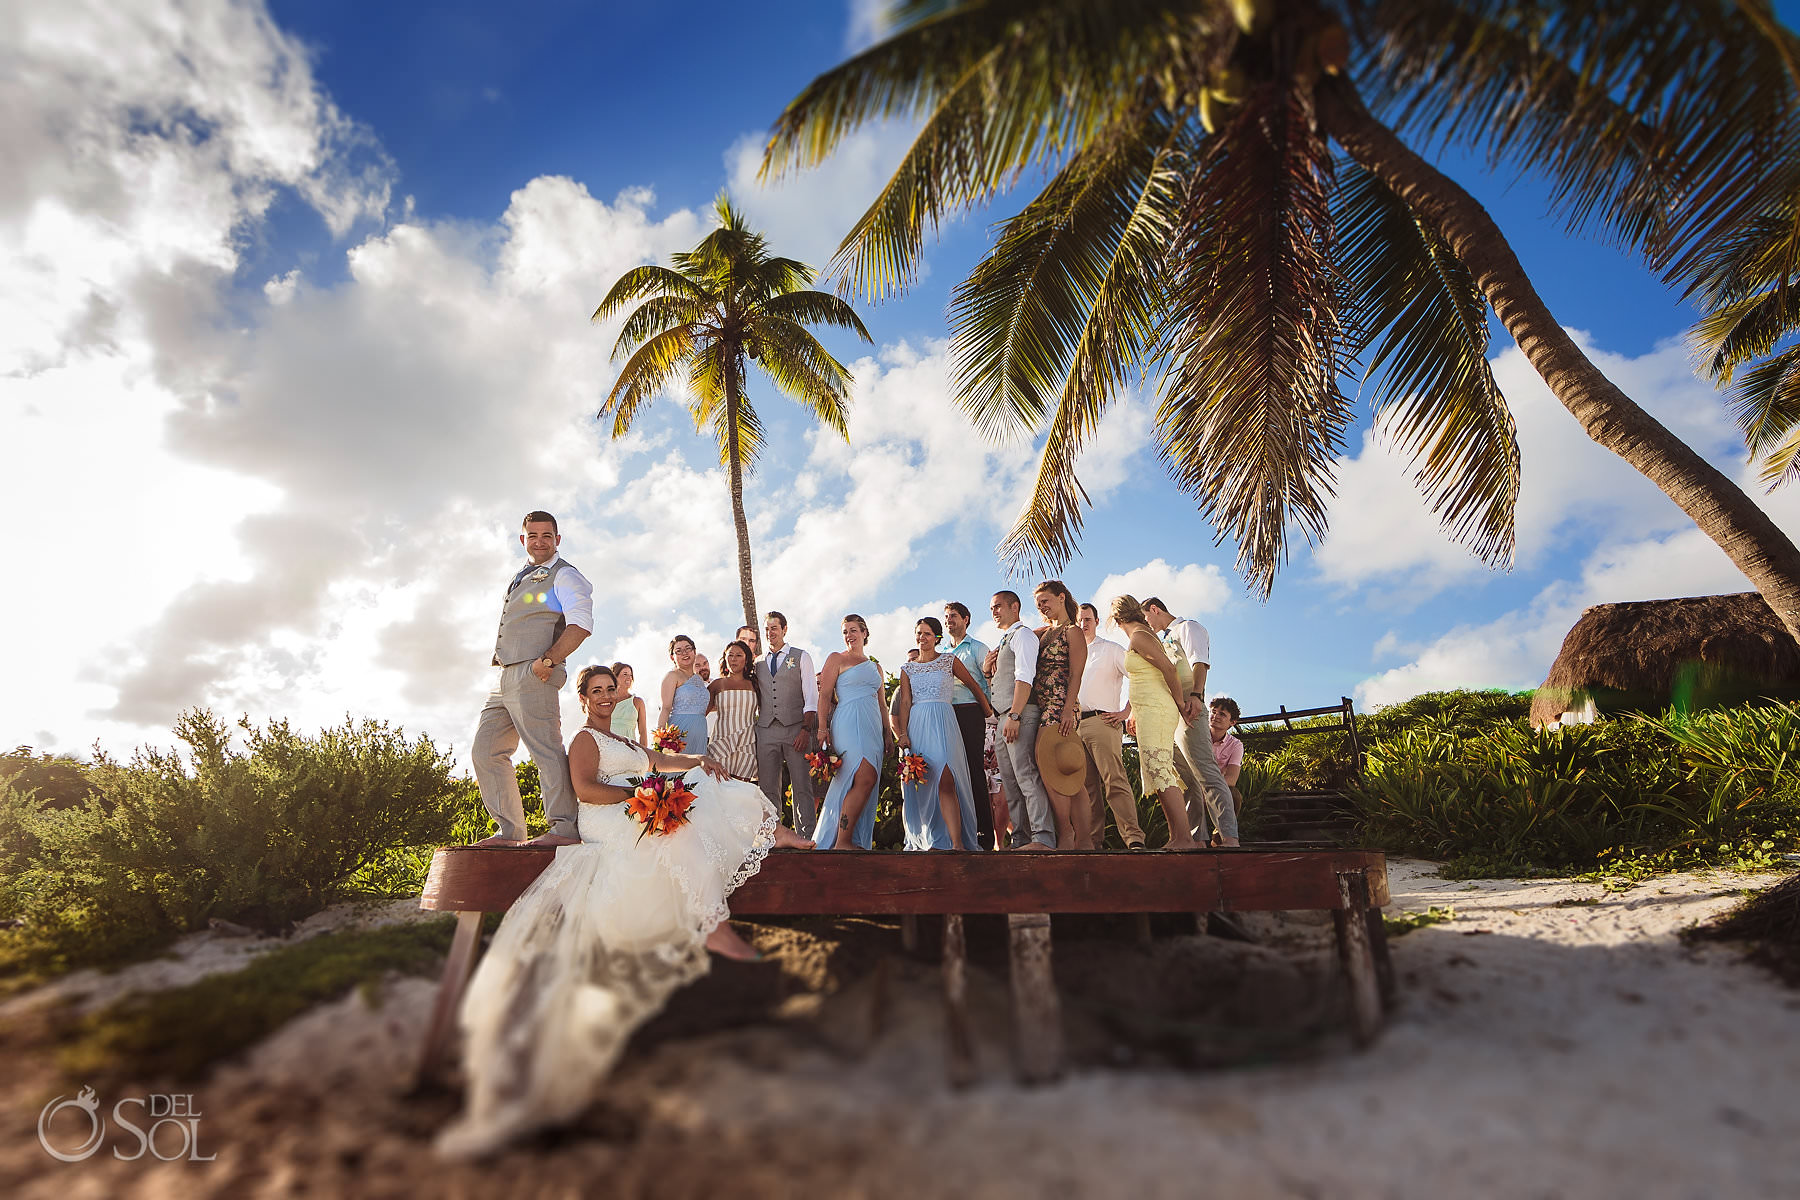 Dreams Tulum Wedding Party Newlyweds Portrait Palms